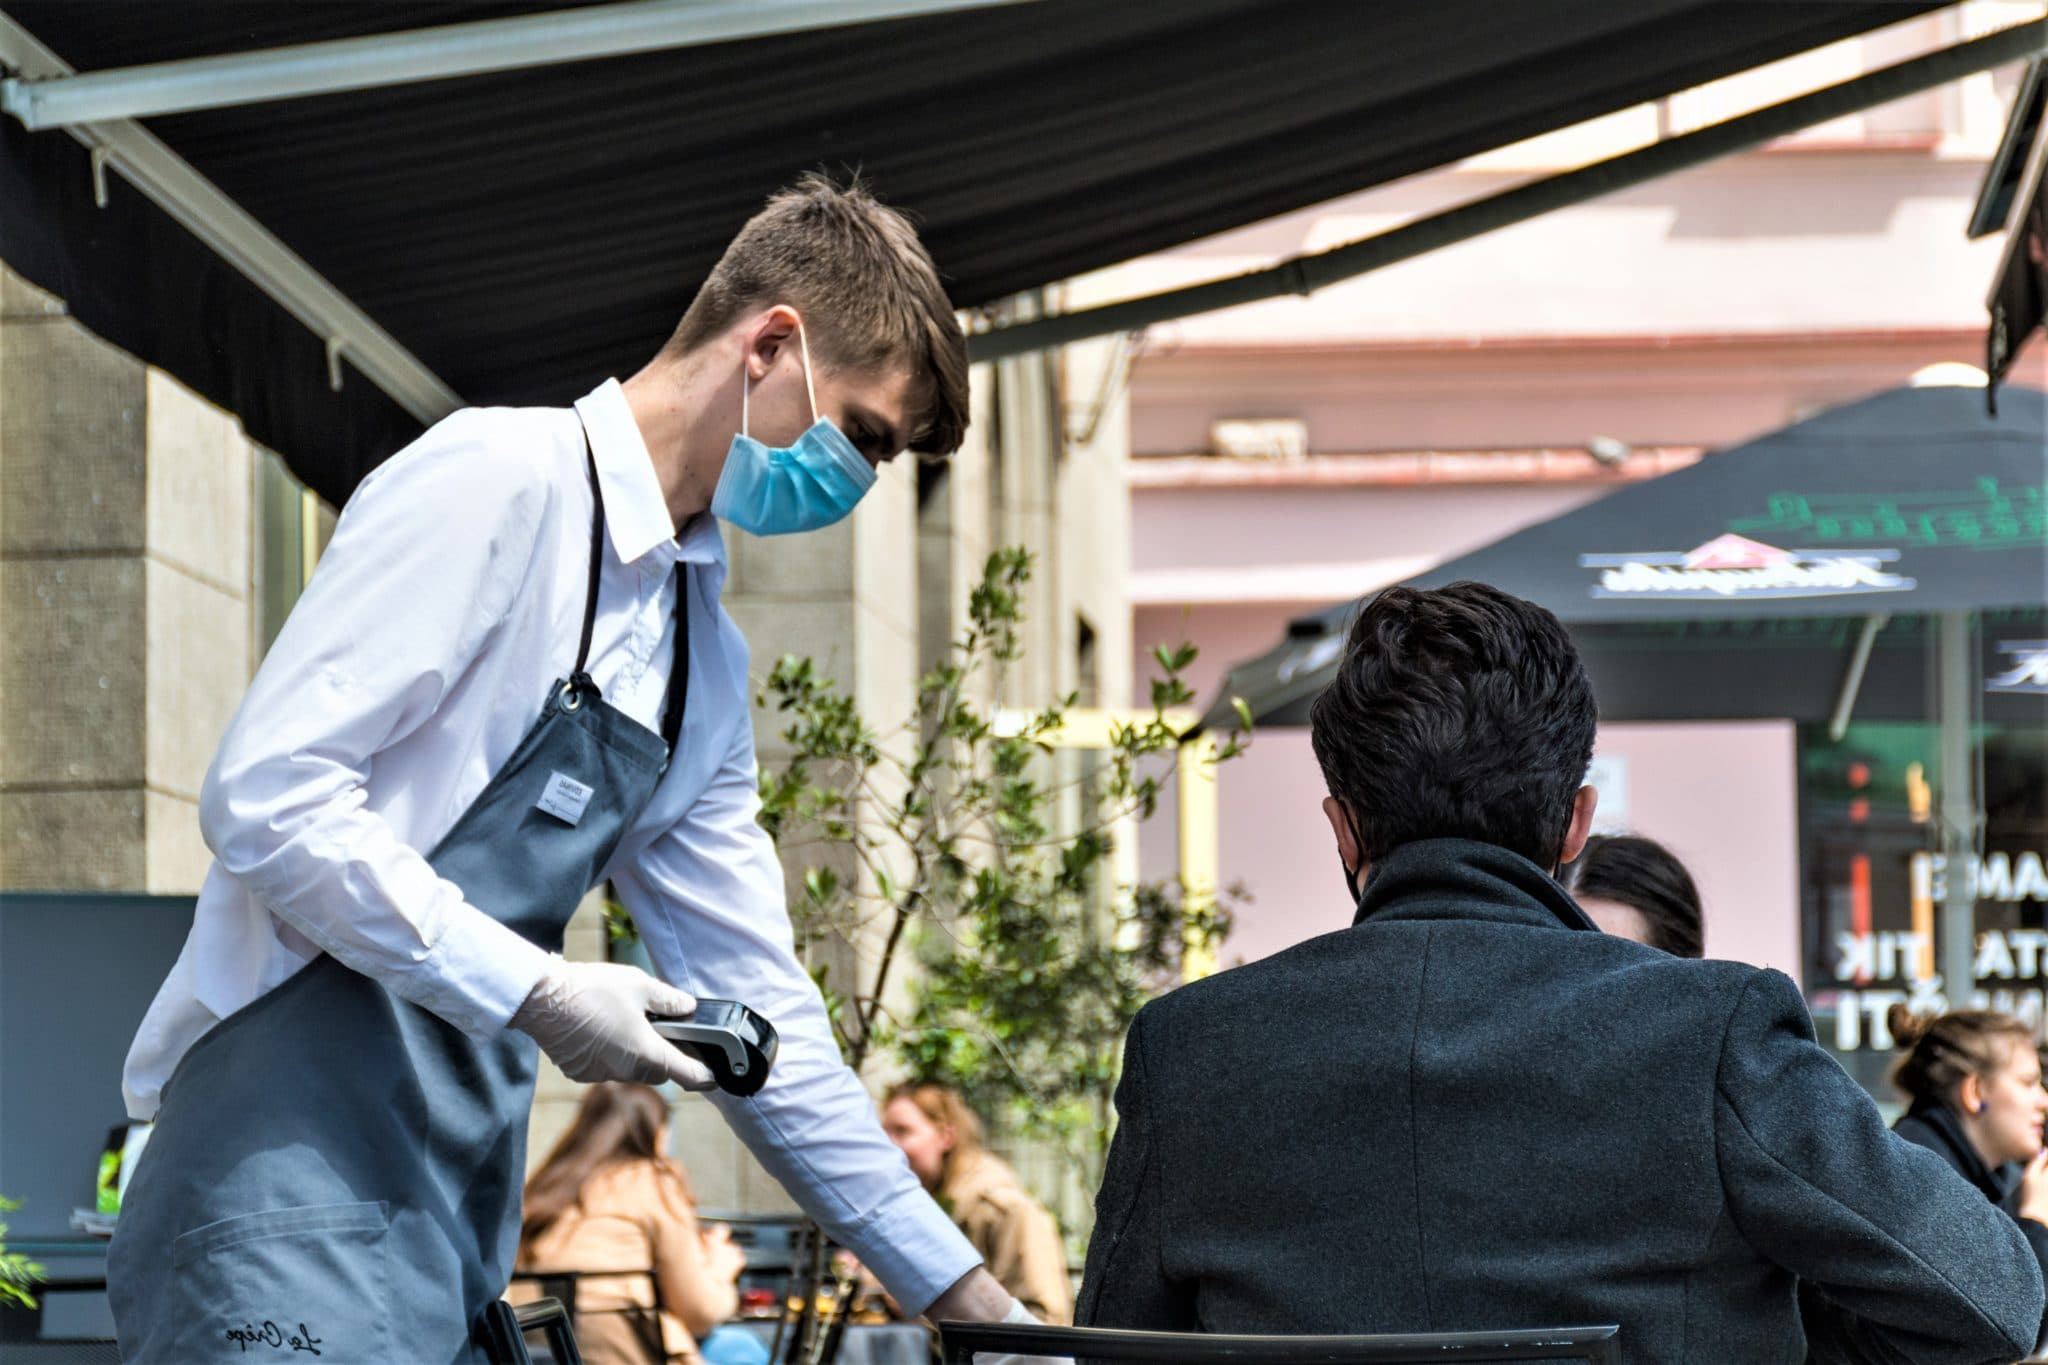 Vilnius, Lithuania - May 15 2020: Waiter with a mask and gloves and client at the table of an outdoor bar, cafe or restaurant, reopening after quarantine